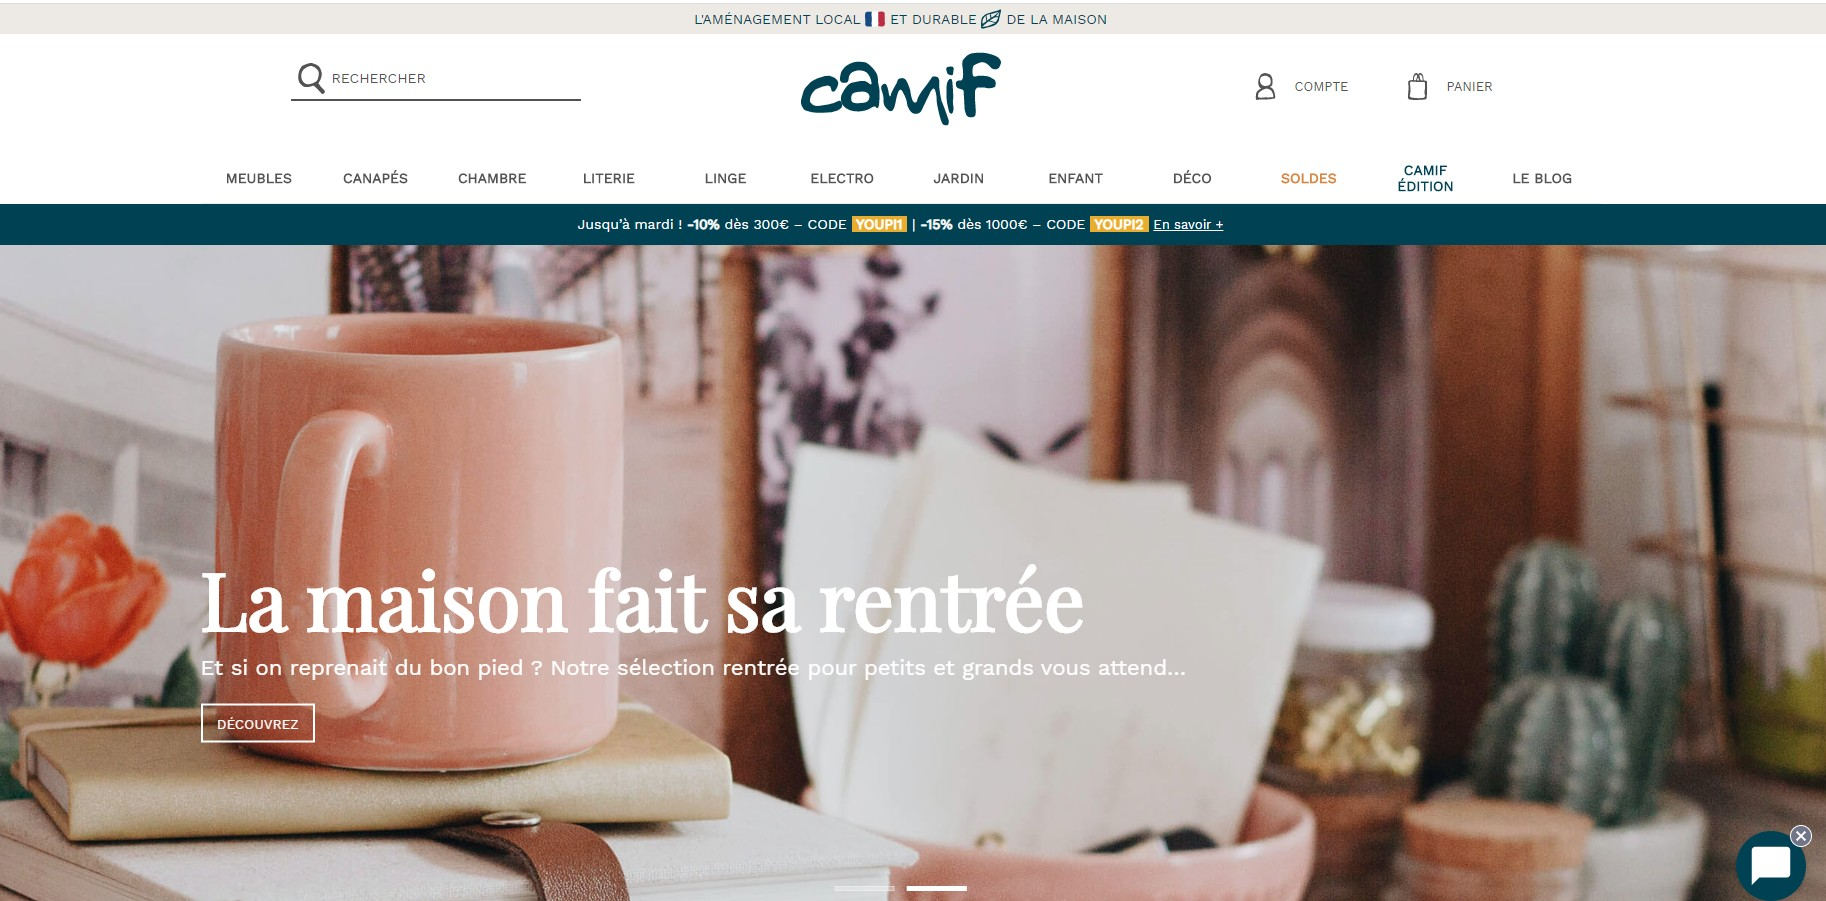 camif les meubles made in france et